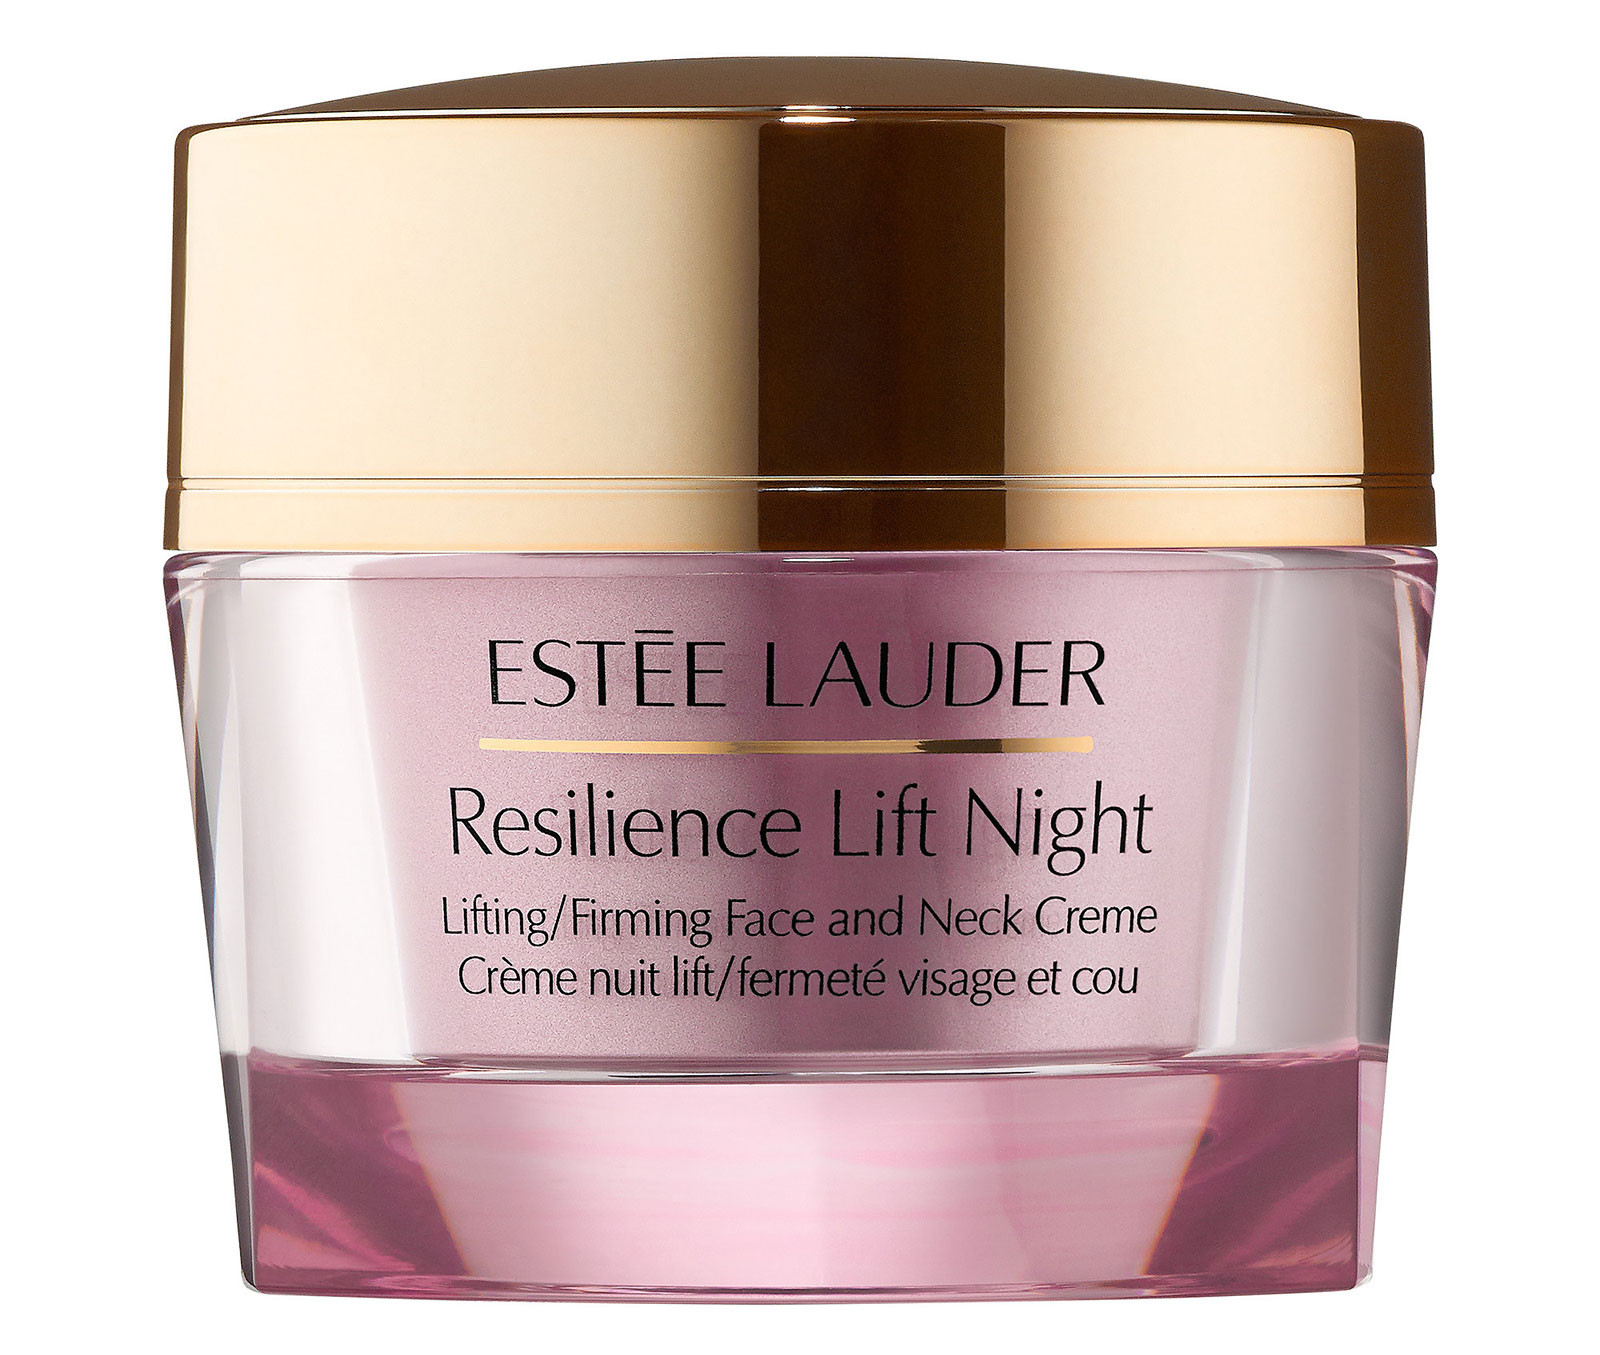 estee lauder resilience lift night face & neck cream